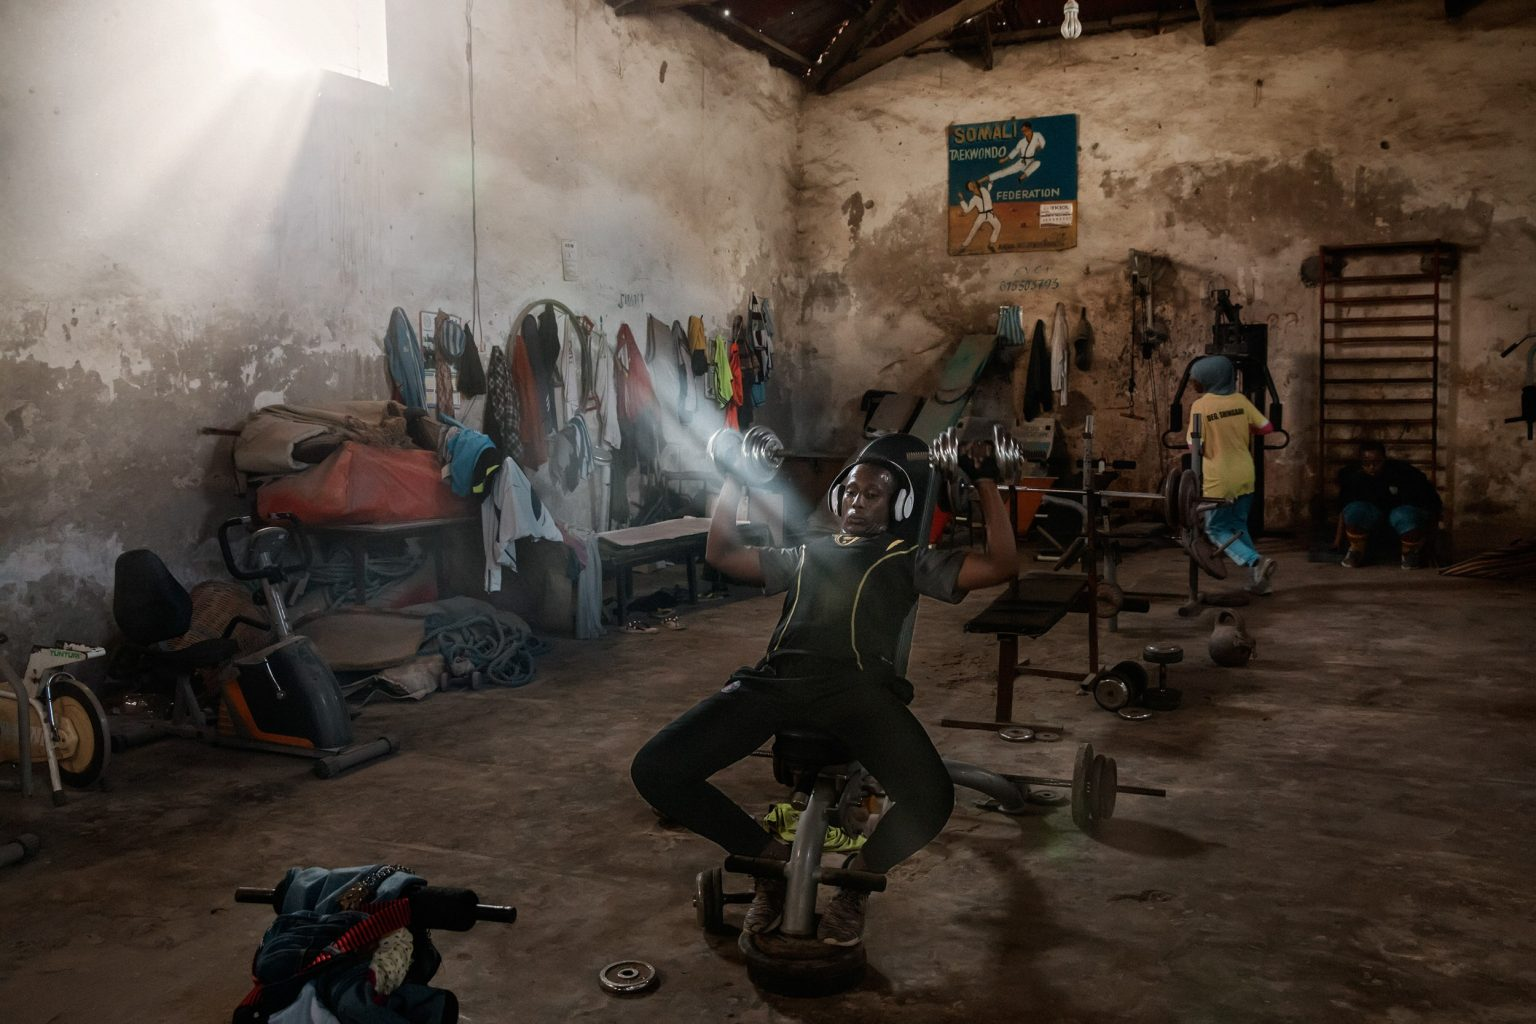 Africa, Somalia, Benaadir region. Mogadishu. 15/09/2017. The Banadir gym in Abdiaziz District. In this gym, people practice boxing, judo, weights and athletics. The present of the Somali capital. Behind it, a civil war lasting 25 years; ahead of it, a future of rebirth. Mogadishu is at a crossroads. On the one hand, the persistence of a surreptitious conflict based on a new, asymmetrical strategy of terror with Al-Shabaab, yet on the other, a desire for a return to normal life on the part of the Somali people, who are timidly seeking to carve out a role for themselves.